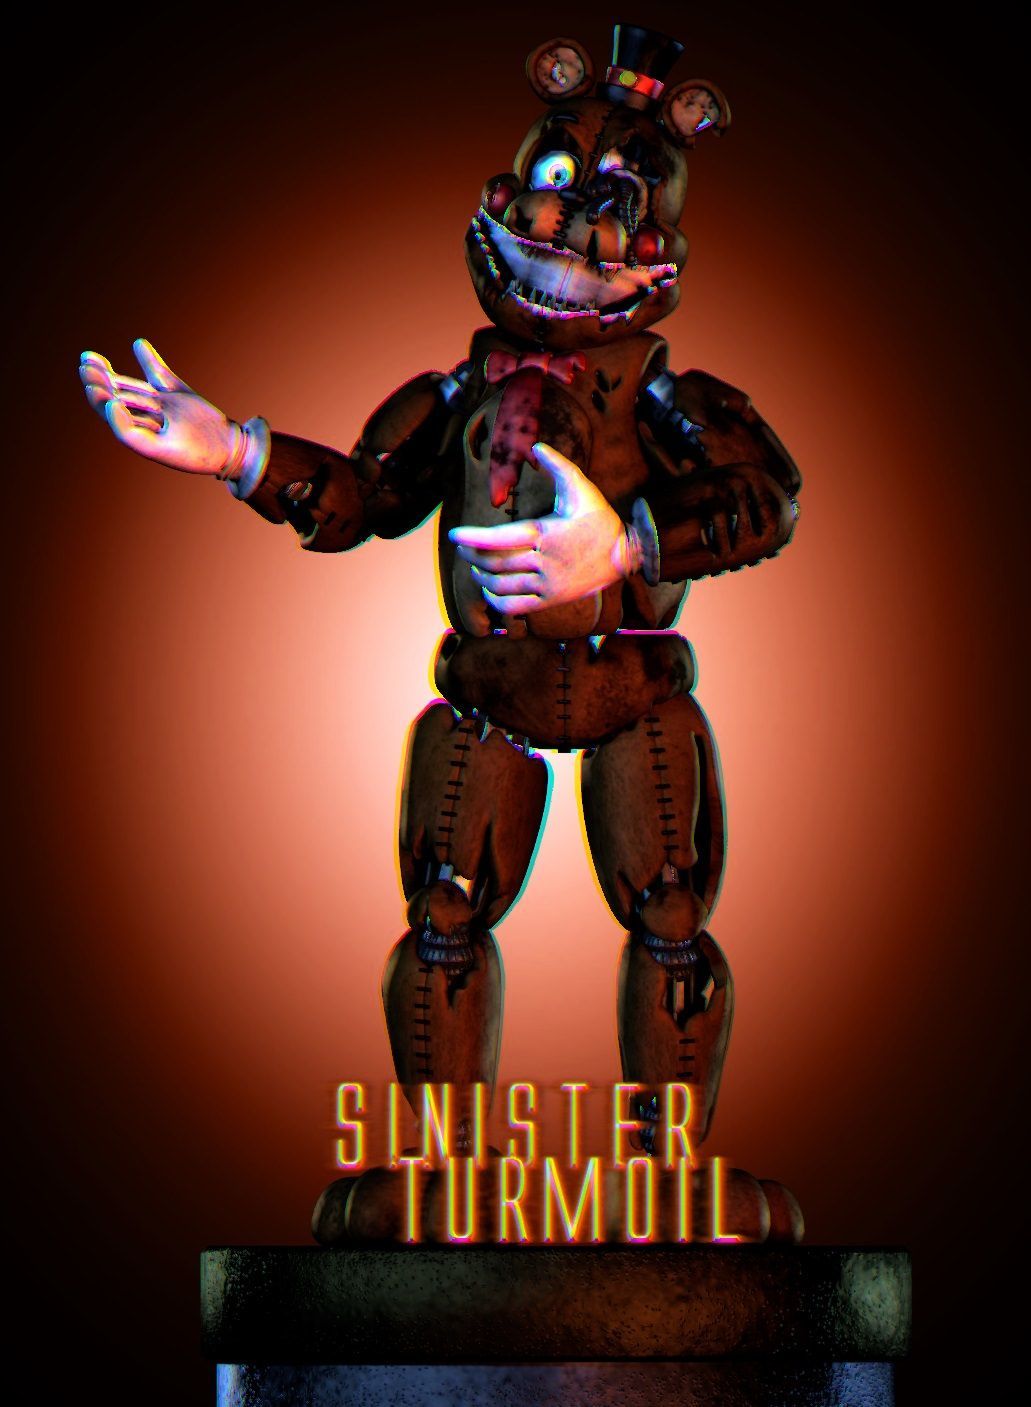 Funhouse Freddy Is A Presumed Antagonist In Sinister Turmoil He Is One Of The Characters At Fredbear And Friends Funland Fnaf Characters Freddy Fnaf Drawings